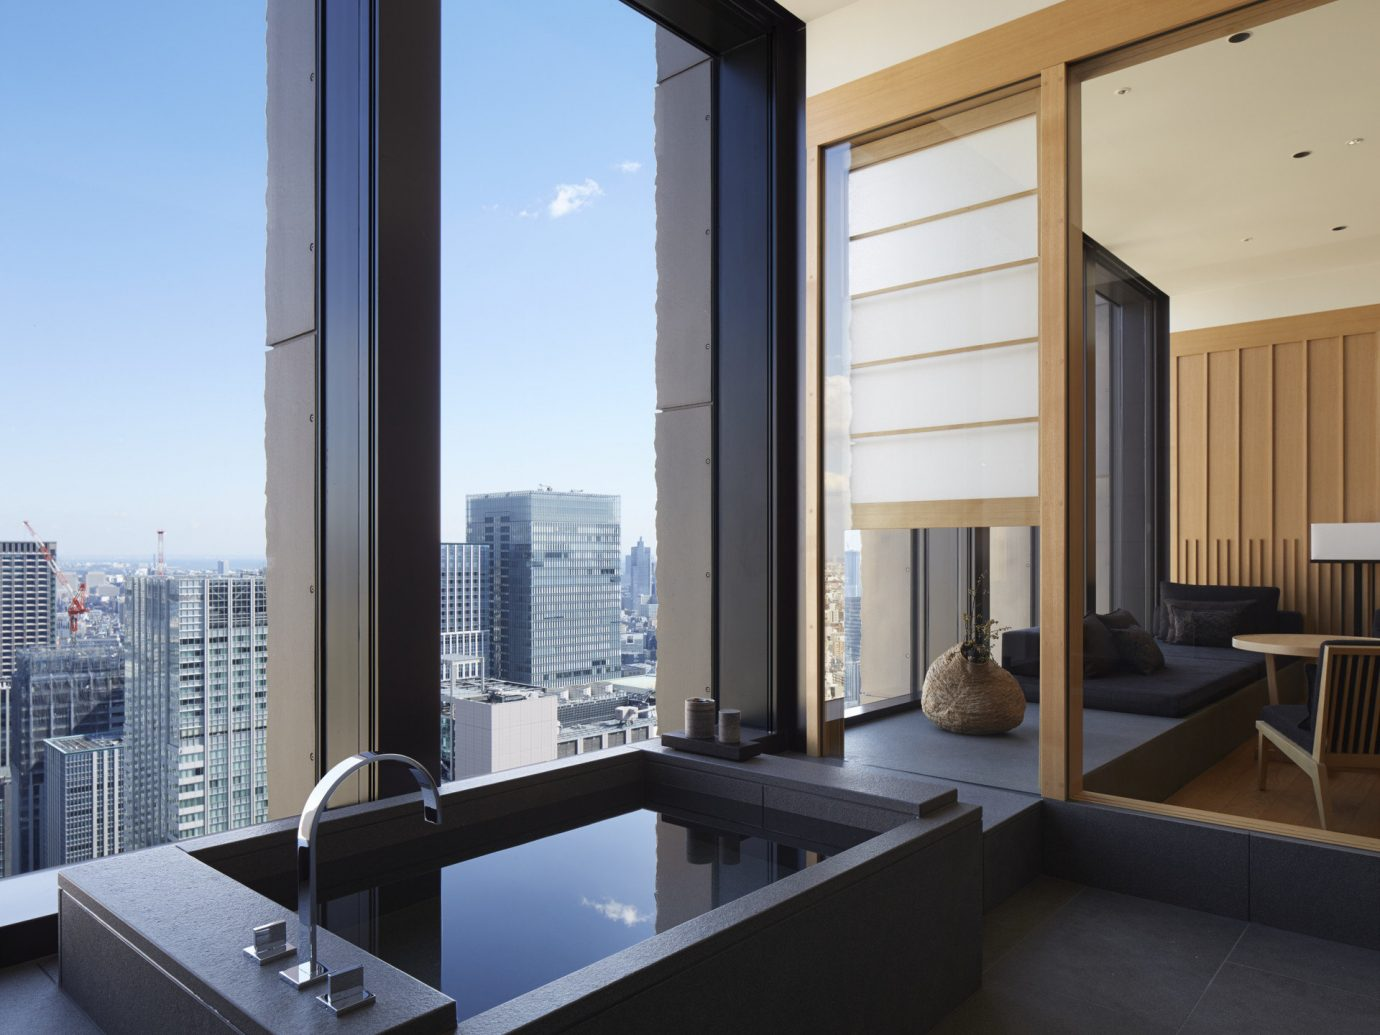 Hotels Japan Romance Tokyo window indoor floor building property room house Architecture interior design daylighting condominium home living room professional Design Modern apartment estate window covering